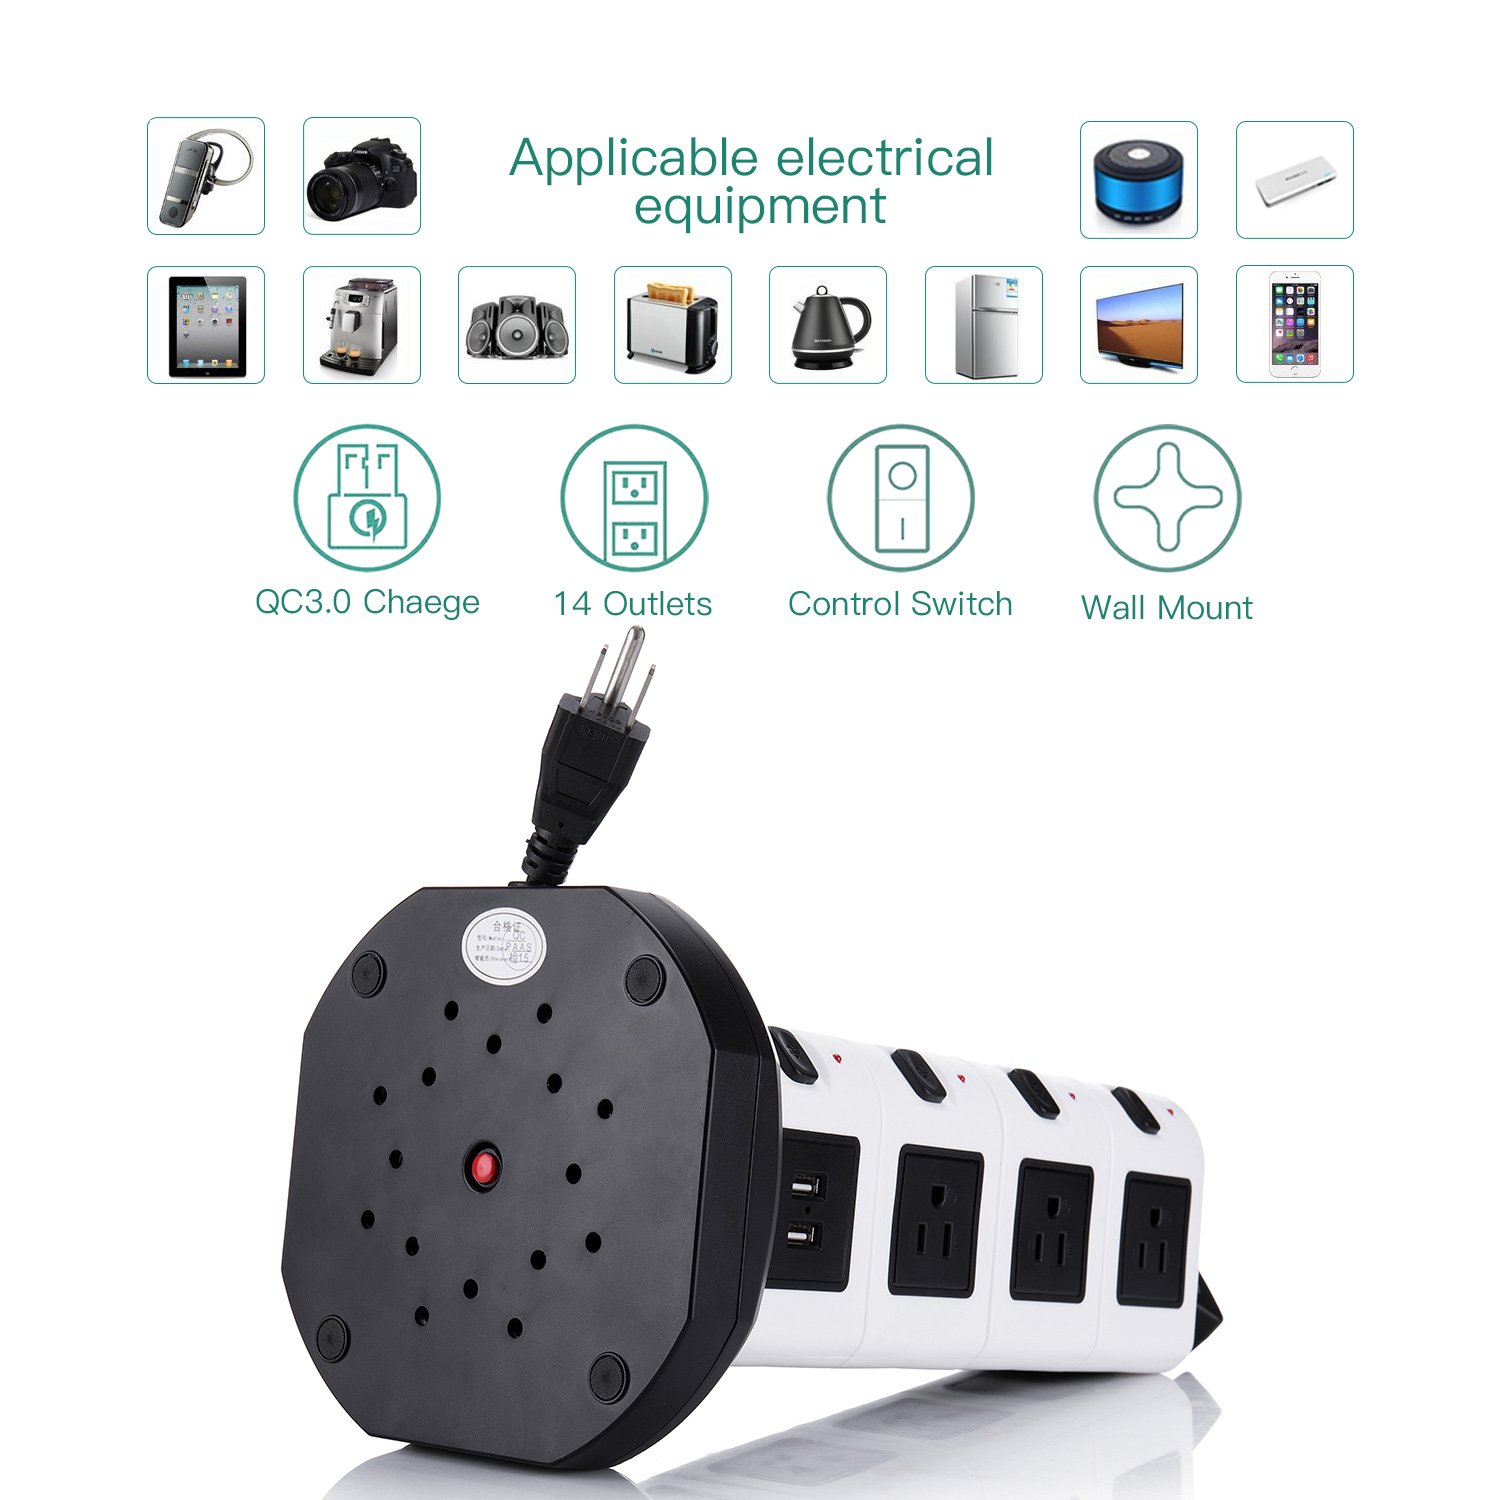 JACKYLED Power Strip - 14 Outlet Plugs with 4 USB Slot 6.5ft Cord Wire Extension 3000W Surge Protector Universal Socket Charging Station for PC Laptops Mobile Devices by JACKYLED (Image #7)